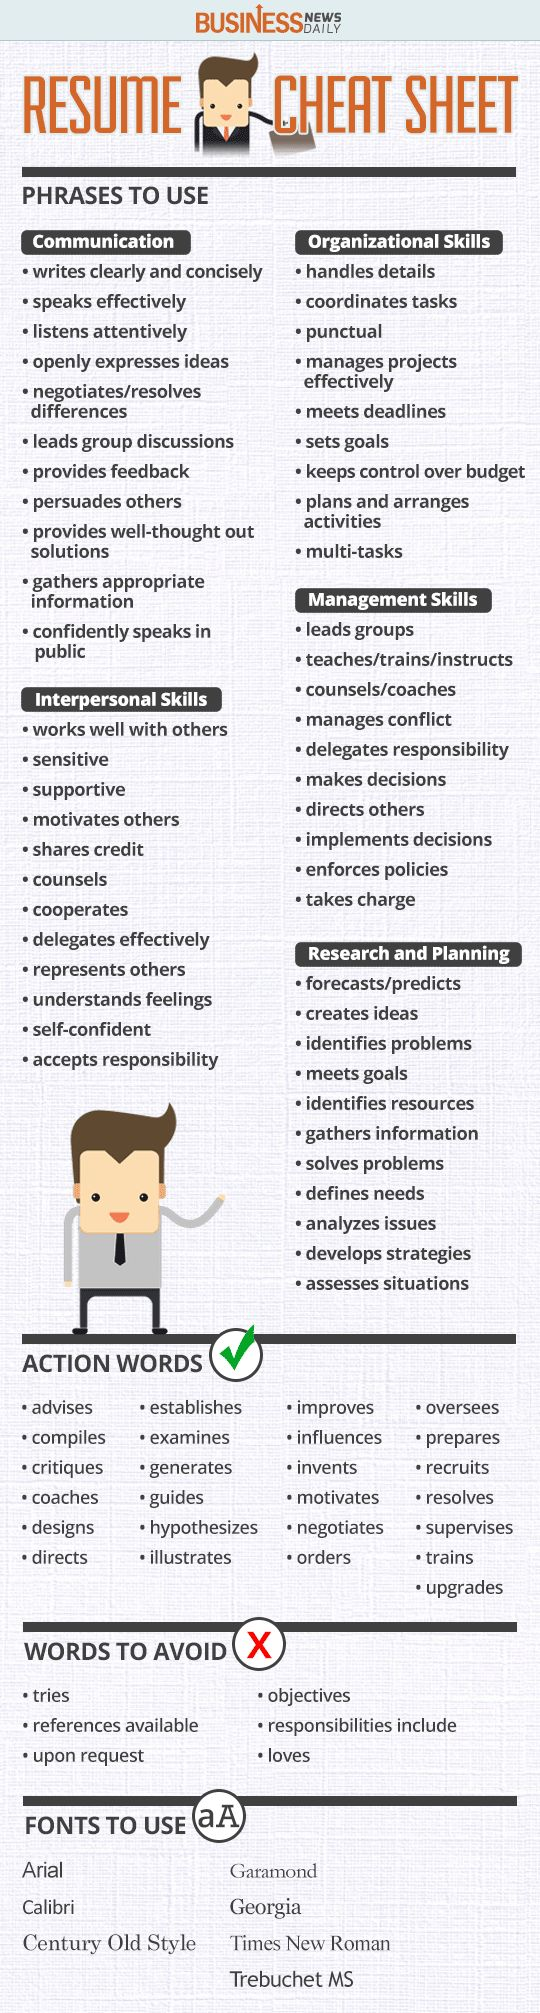 Opposenewapstandardsus  Stunning  Ideas About Resume On Pinterest  Cv Format Resume Cv And  With Fair Resume Cheat Sheet Infographic Andrews Almost Done With A Complete Unit On Employment Which With Lovely How To Write A Military Resume Also Sample Cpa Resume In Addition Image Of Resume And How Do You Write A Cover Letter For A Resume As Well As Job Summary Examples For Resumes Additionally Datastage Resume From Pinterestcom With Opposenewapstandardsus  Fair  Ideas About Resume On Pinterest  Cv Format Resume Cv And  With Lovely Resume Cheat Sheet Infographic Andrews Almost Done With A Complete Unit On Employment Which And Stunning How To Write A Military Resume Also Sample Cpa Resume In Addition Image Of Resume From Pinterestcom